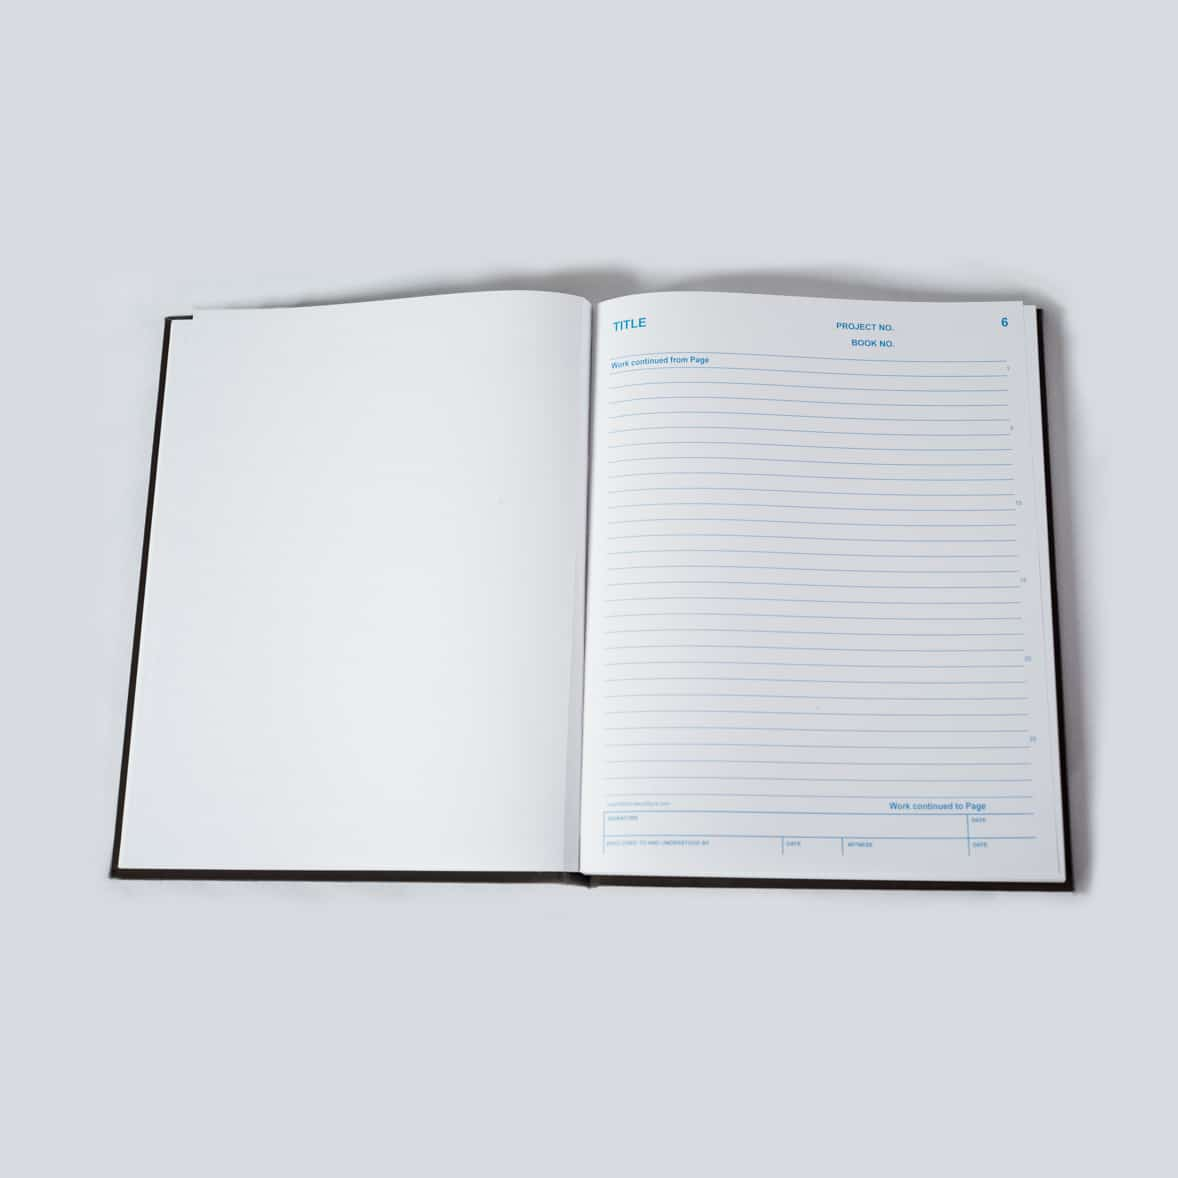 Duplicate Lined Research Notebooks, Duplicate Lined Laboratory Notebooks - Scientific Bindery